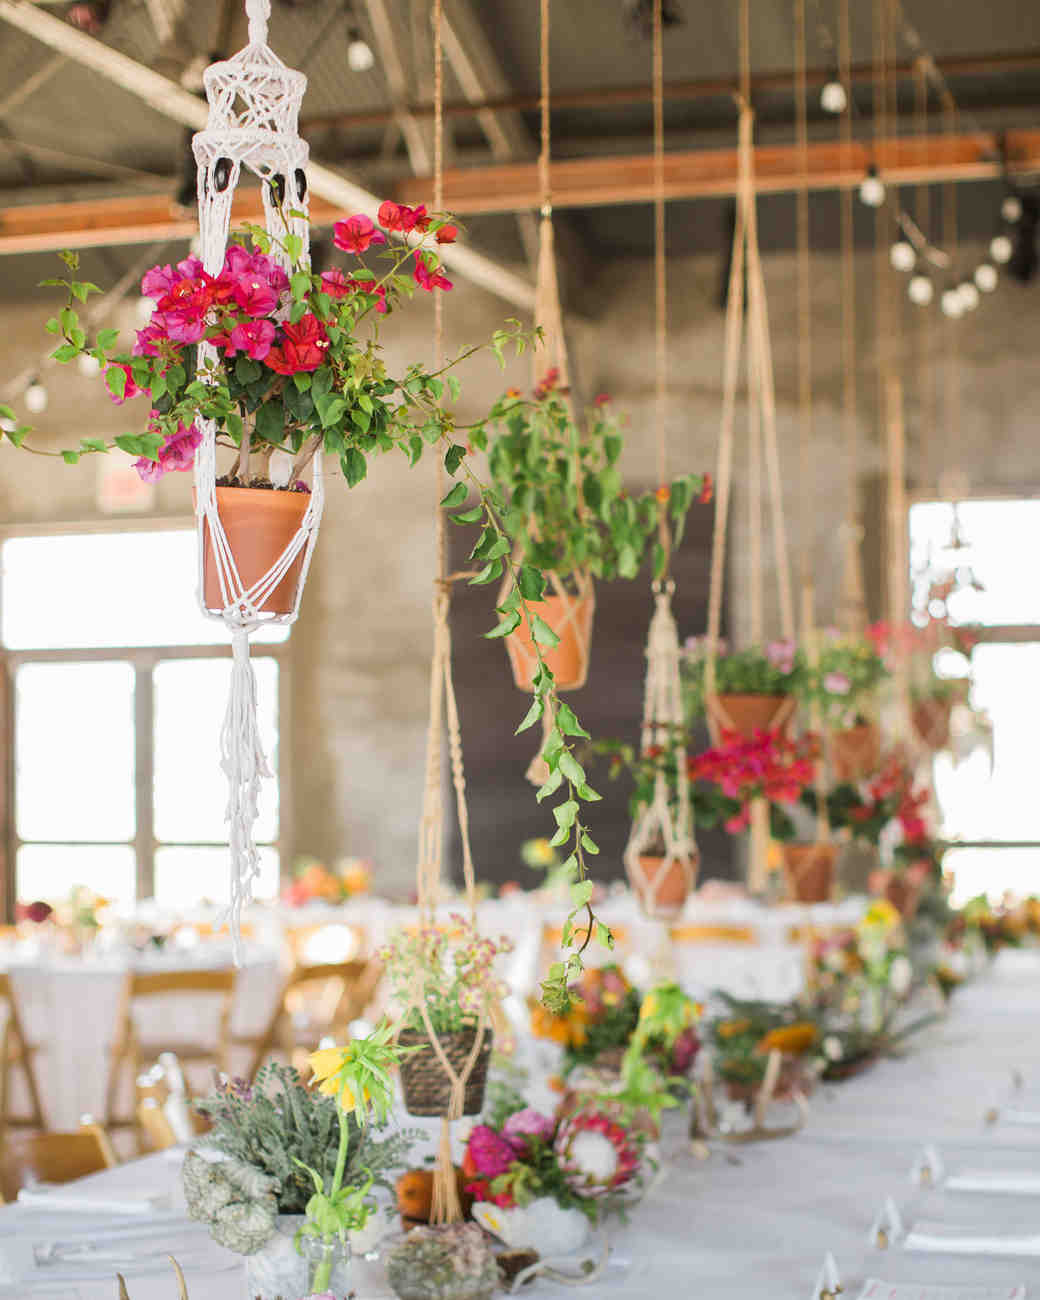 Wedding Flower Arrangements: Boho-Chic Wedding Ideas For Free-Spirited Brides And